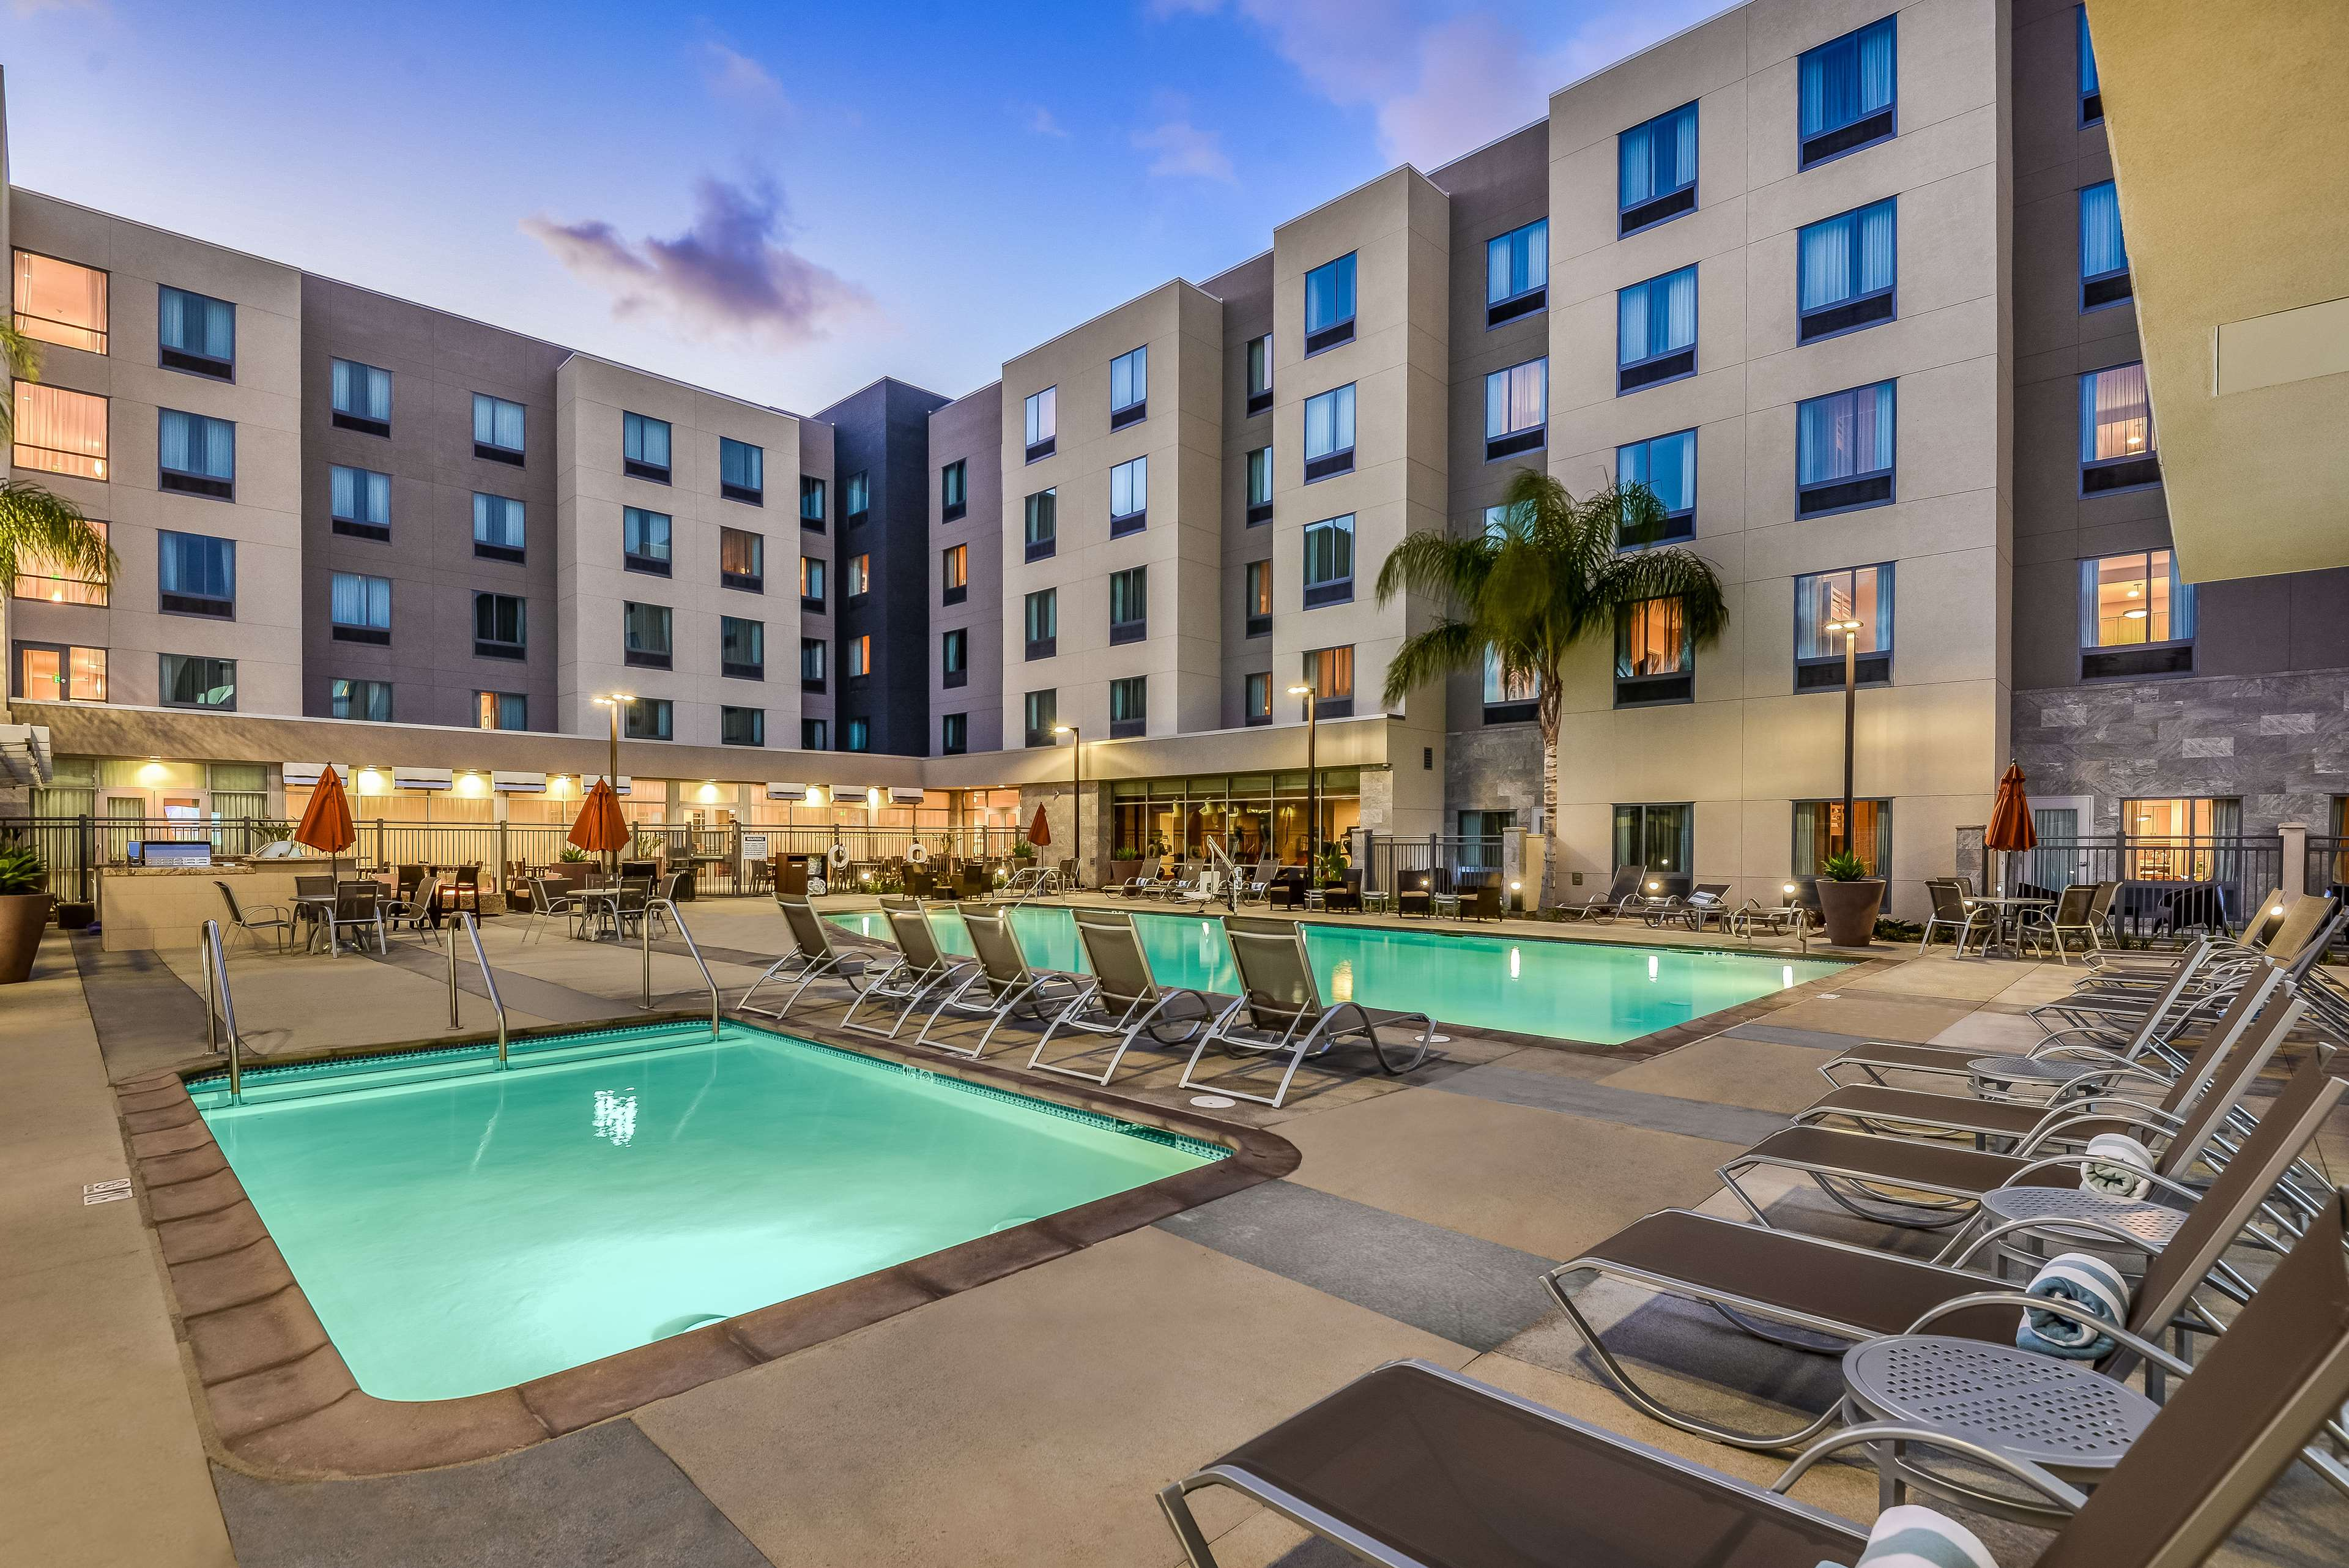 Homewood Suites by Hilton Anaheim Resort - Convention Center image 6